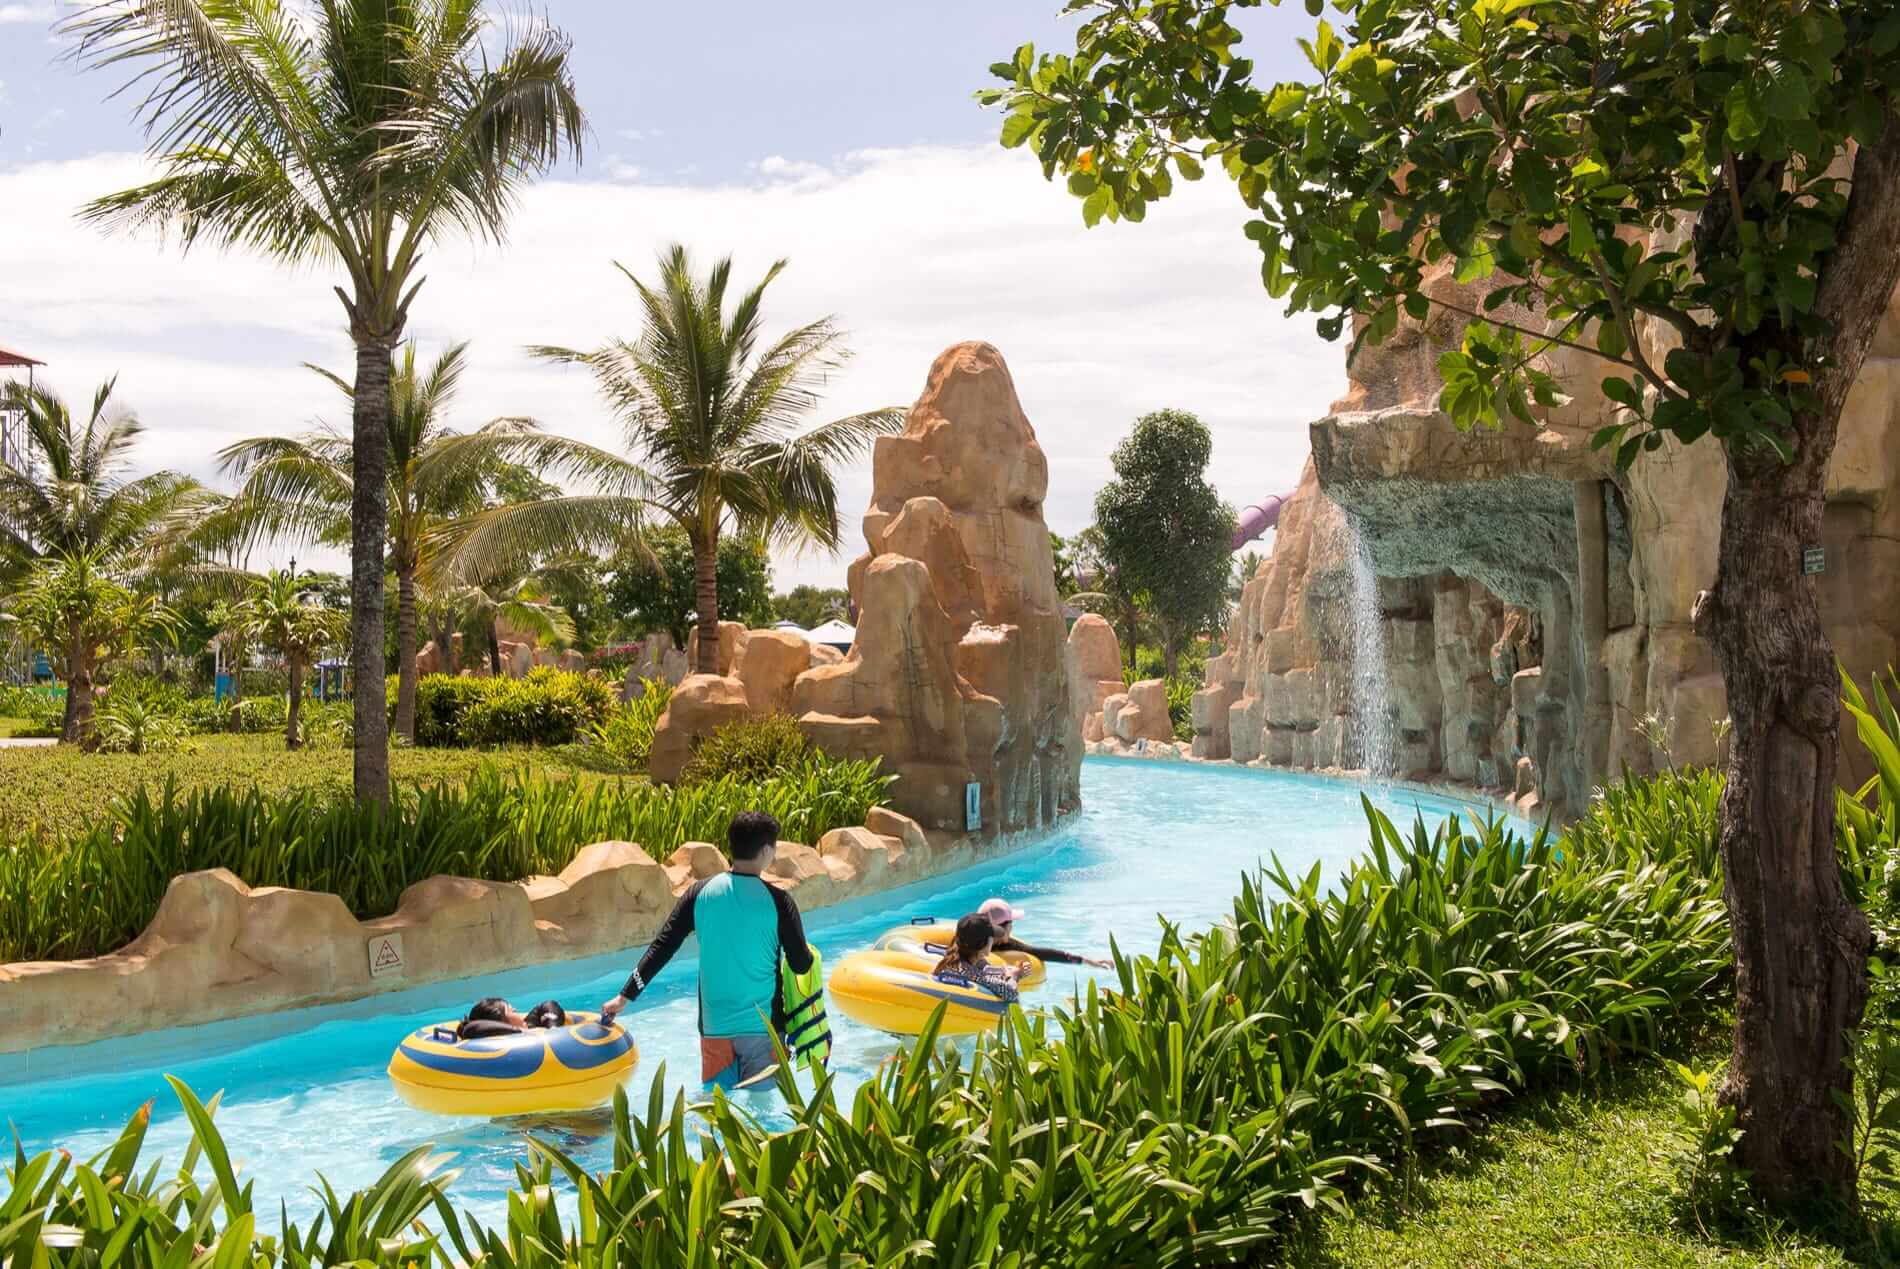 The lazy river at VinPearl Land Water Park